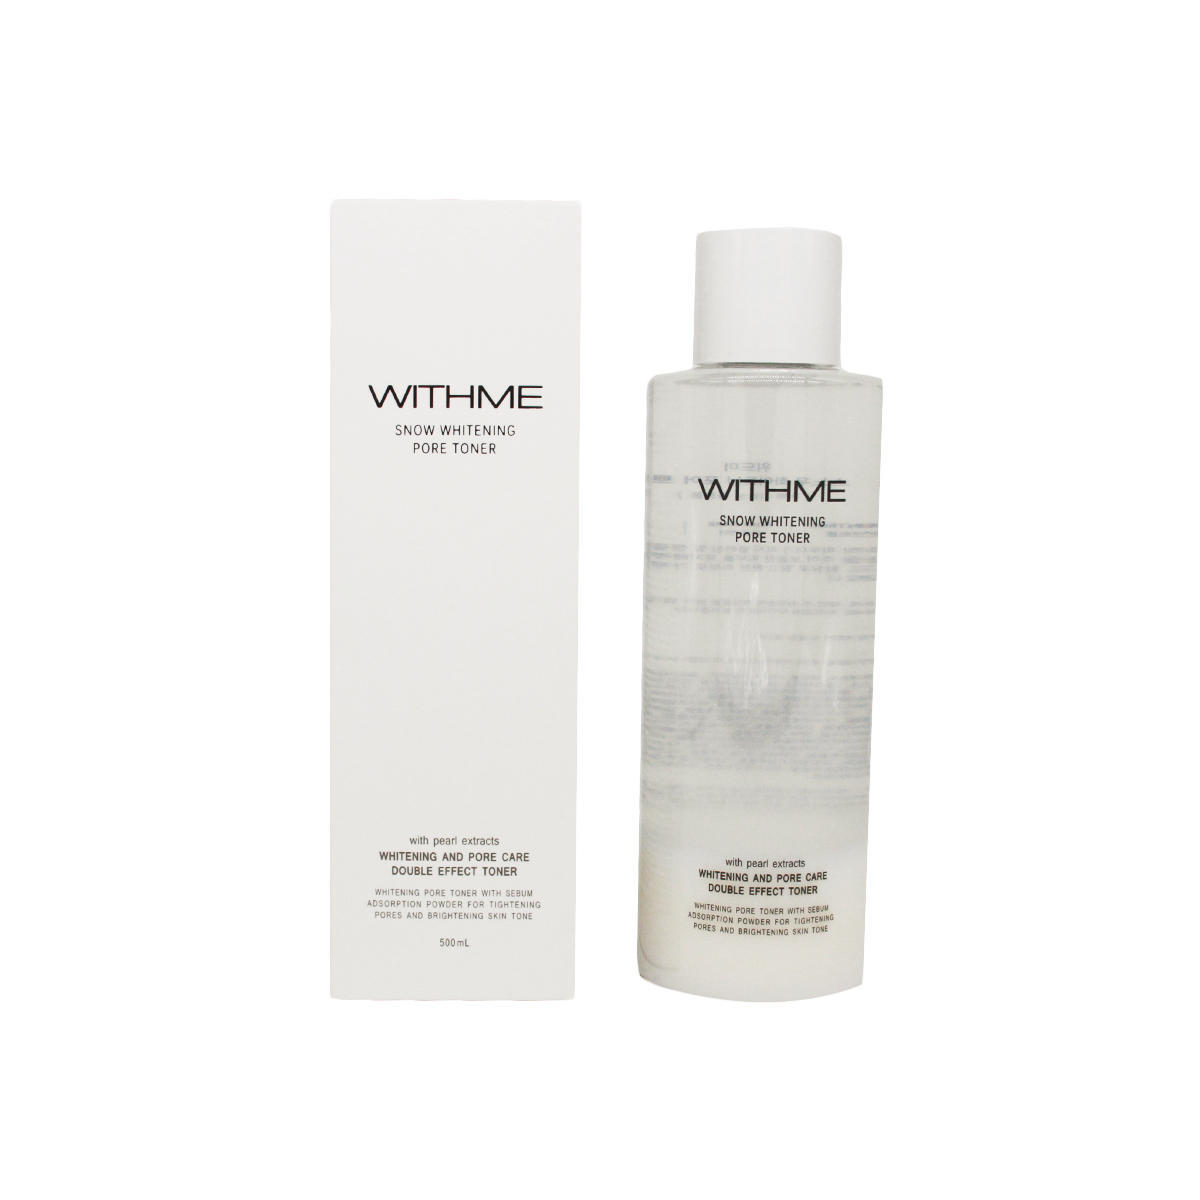 Проблемная кожа Тонер для лица осветляющий, WITHME, Snow Whitening Pore Toner, 500 мл import_files_ec_ecc94a4f5cb211e980fb3408042974b1_0ddeb97d5d7911e980fb3408042974b1.jpg